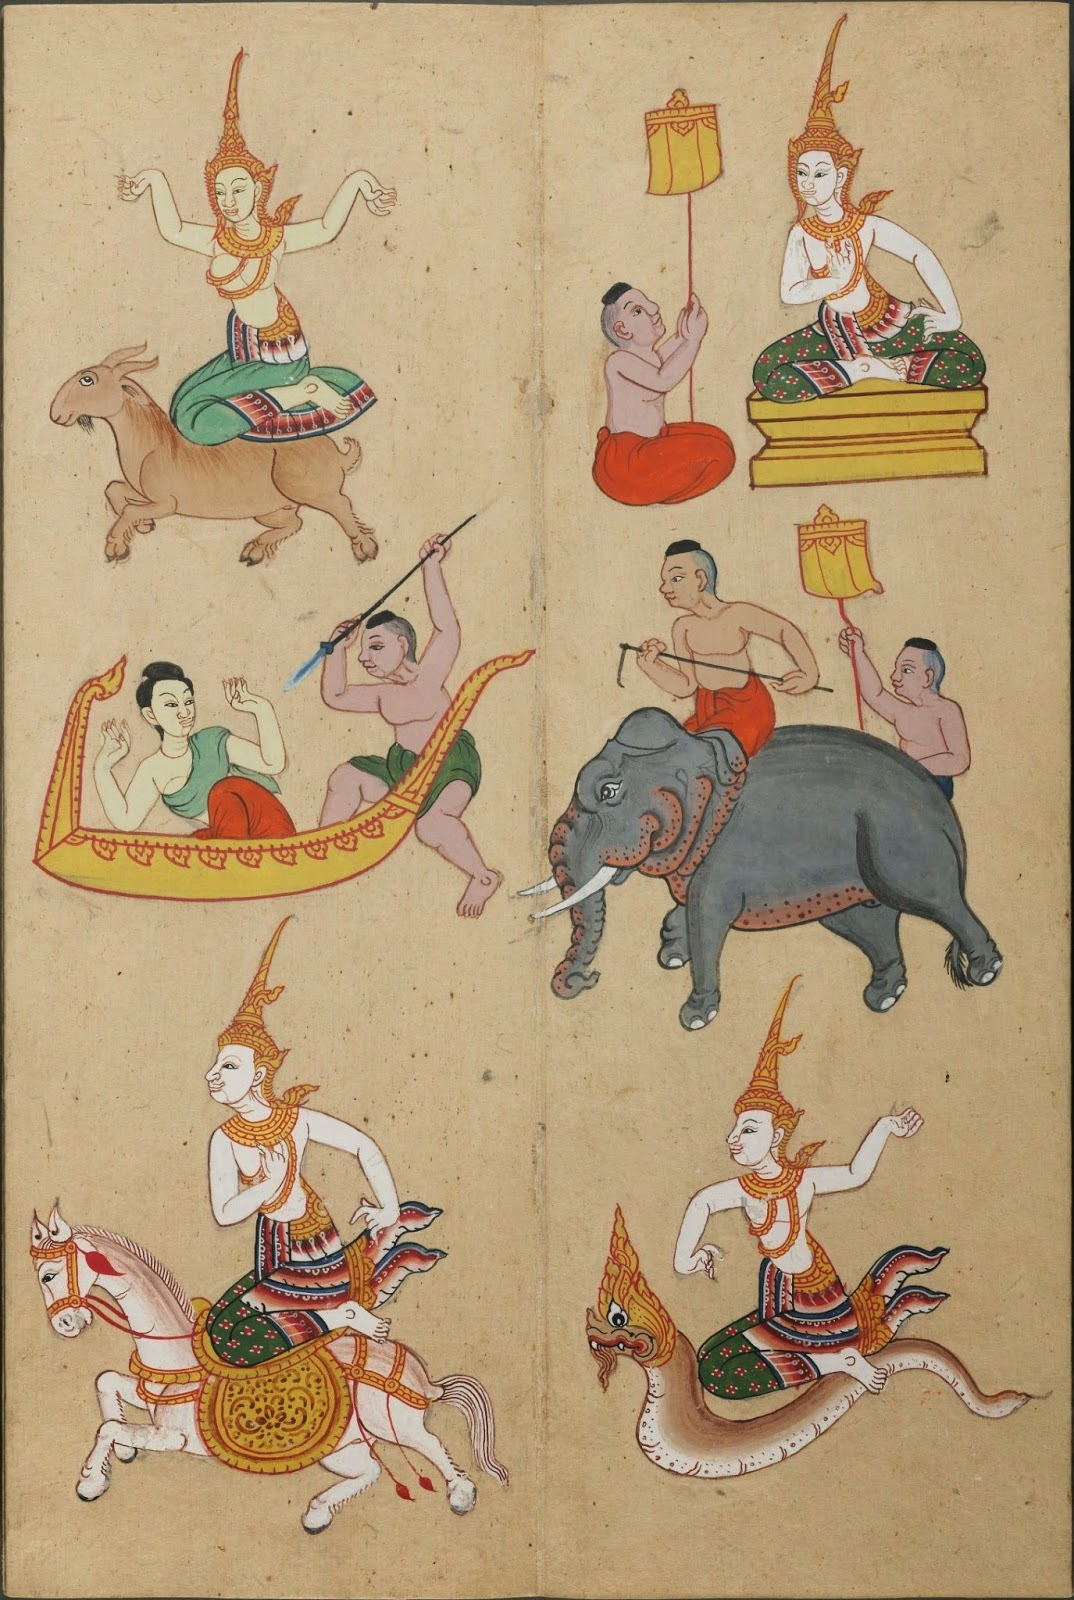 drawings of zodiac figures implying the Year of the Goat in East Asian astrological belief system